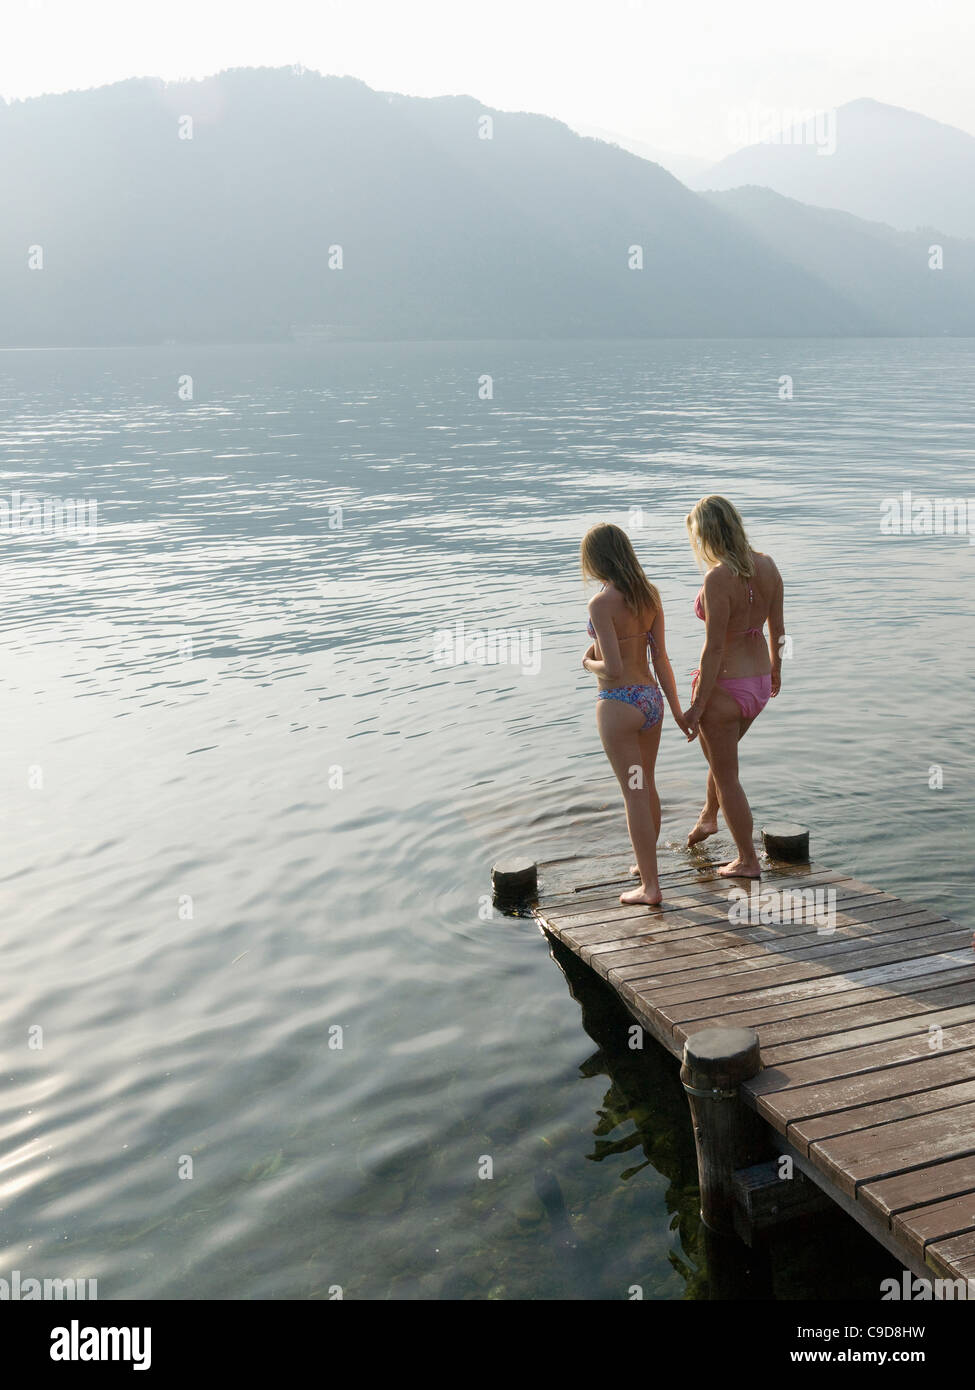 Italy, Piedmont, Lake Orta, Mother and daughter testing water at lake edge - Stock Image